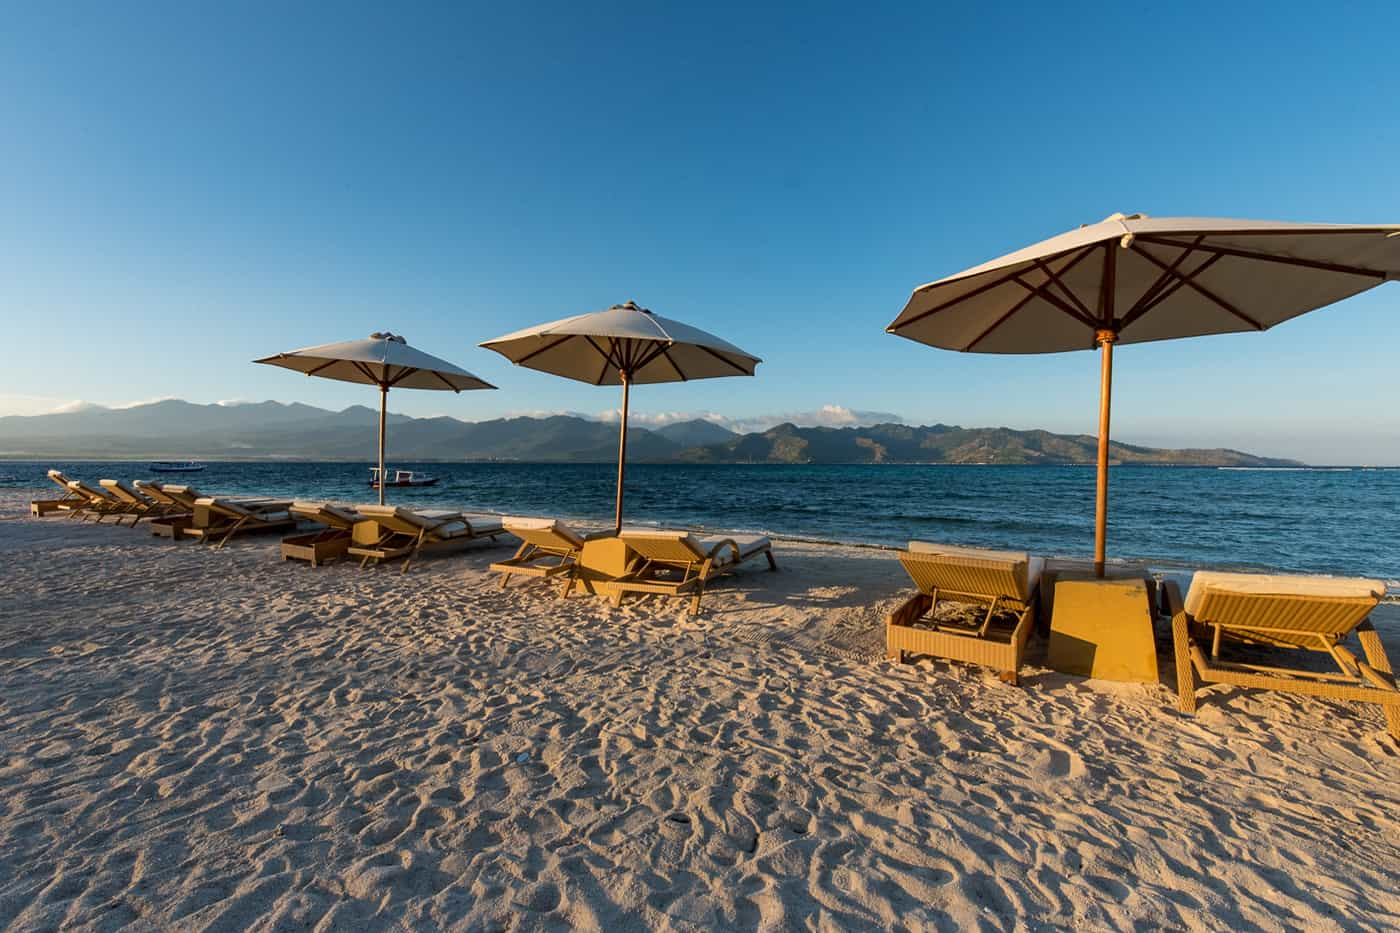 Entrance view at Hotel Ombak Sunset in the Gili Islands of Lombok Indonesia